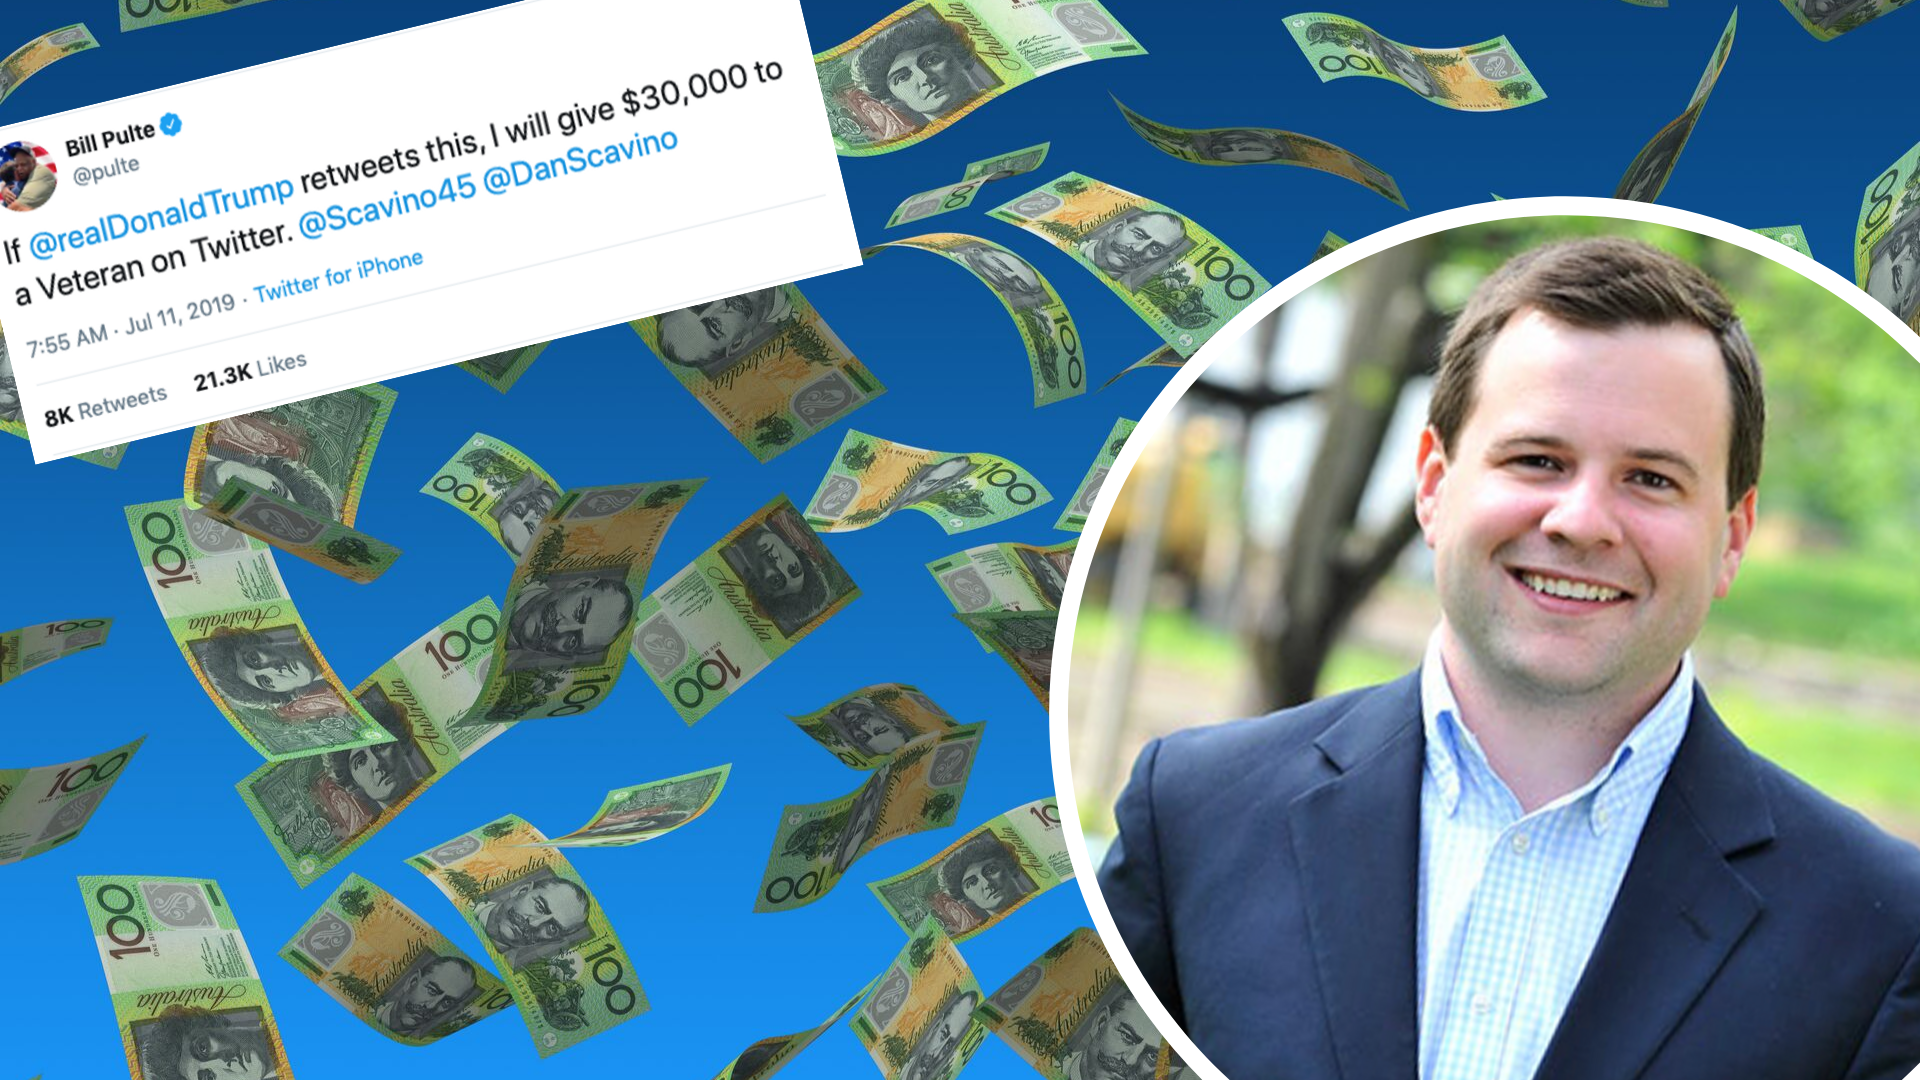 This millionaire is literally giving away his money on Twitter